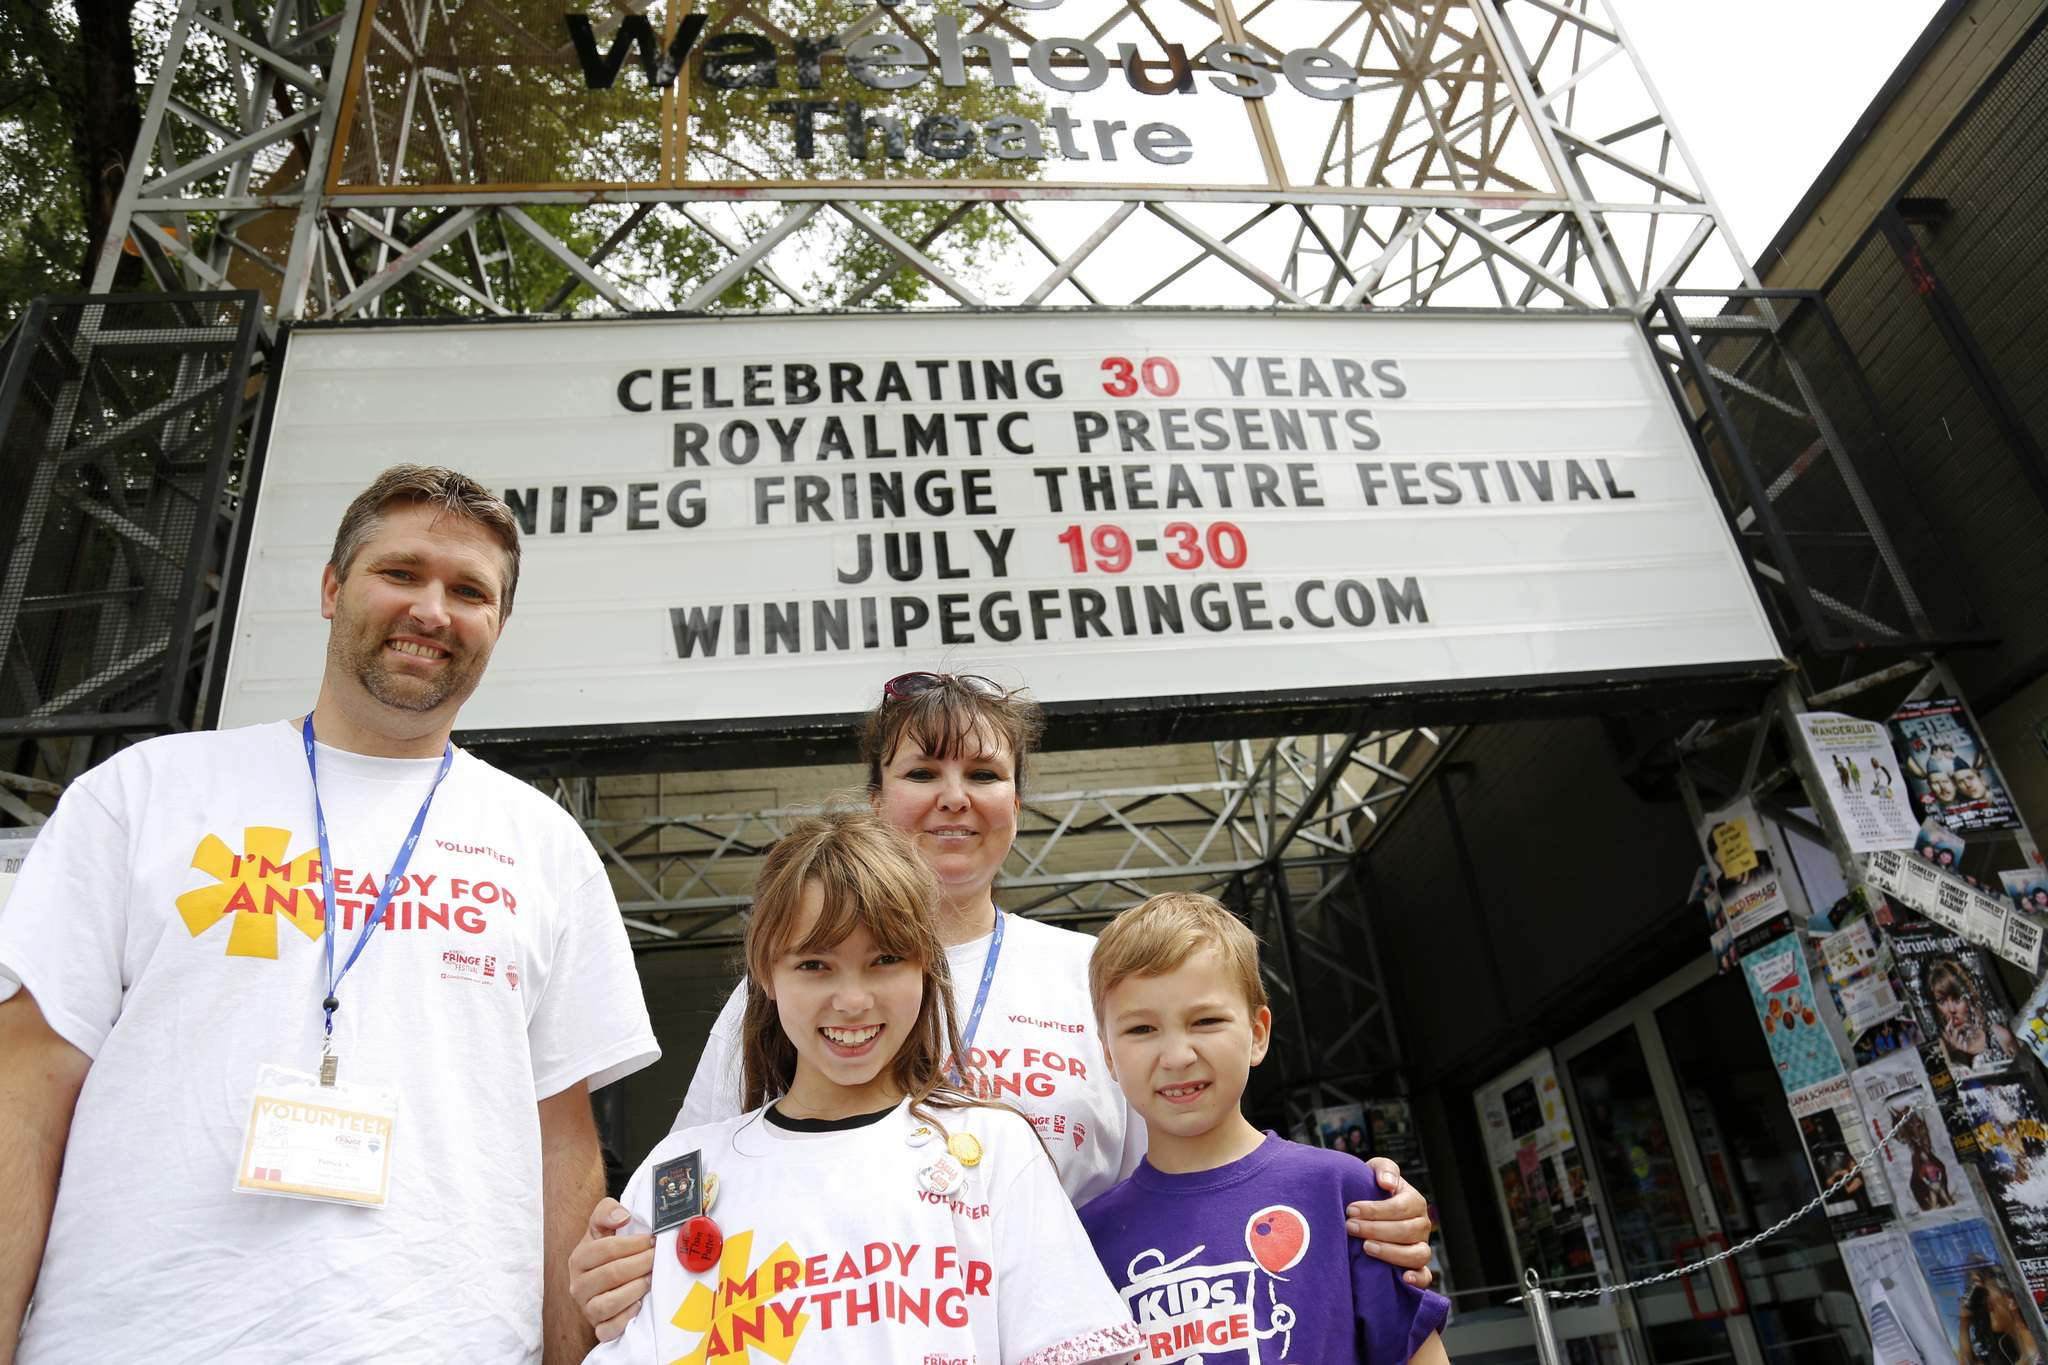 JUSTIN SAMANSKI-LANGILLE / WINNIPEG FREE PRESS</p><p>Patrick and Kathleen Armstrong have been volunteering at the Winnipeg Fringe Theatre Festival since 2006. The Armstrong's children, Sadie and Beckett, join their parents on their shifts.</p>